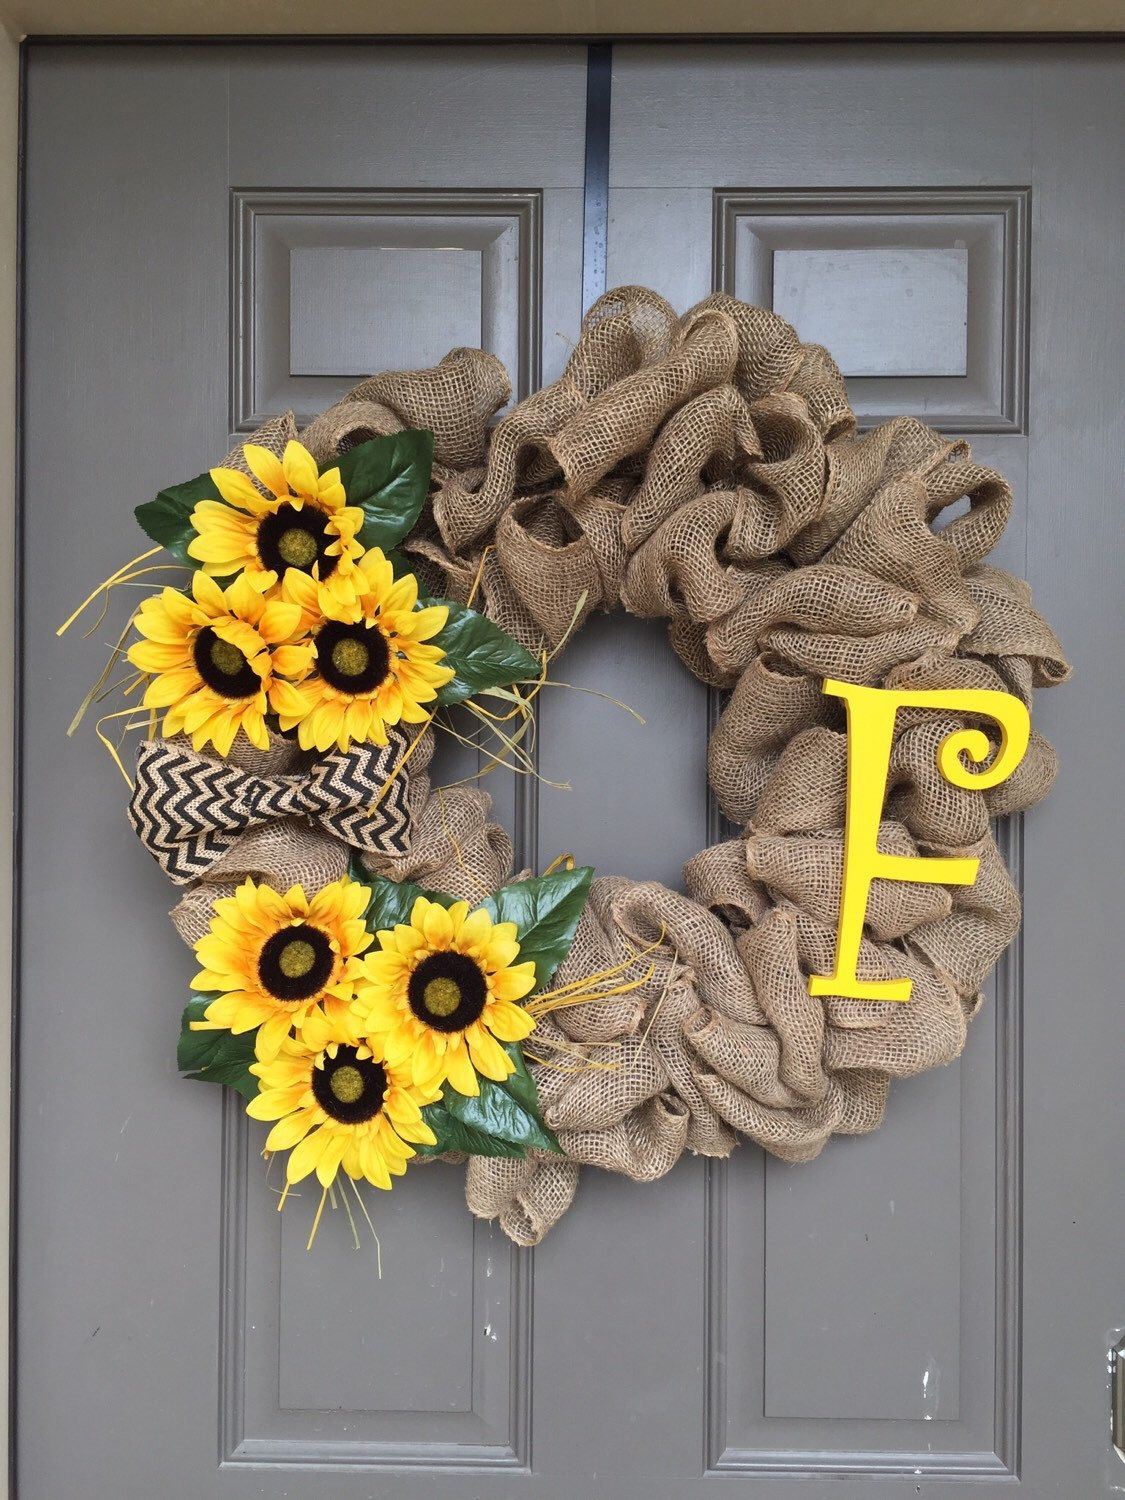 Personalized front door decorations - What A Perfect Addition To The Front Door For The Spring Summer Time This